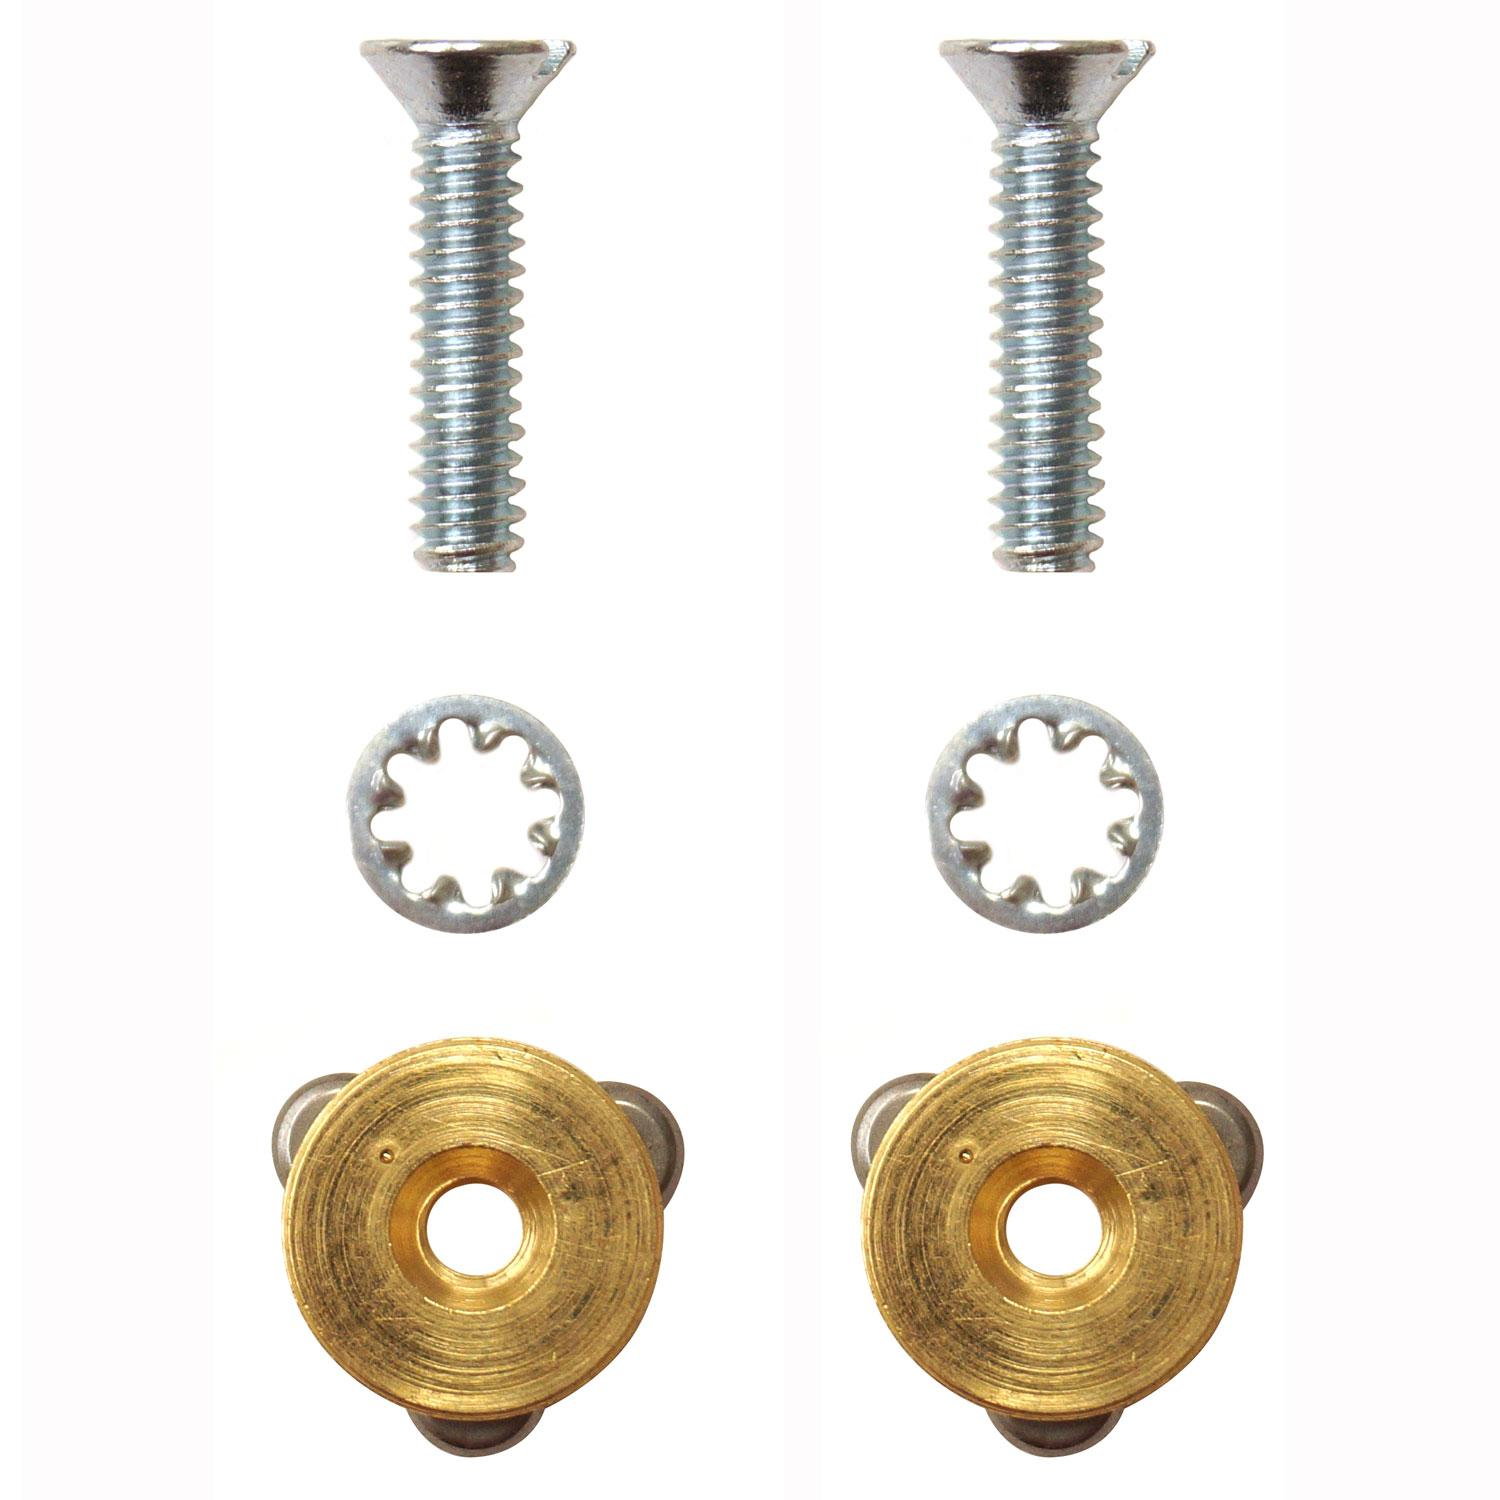 Replacement Turrets For Ephrems Bottle Cutter